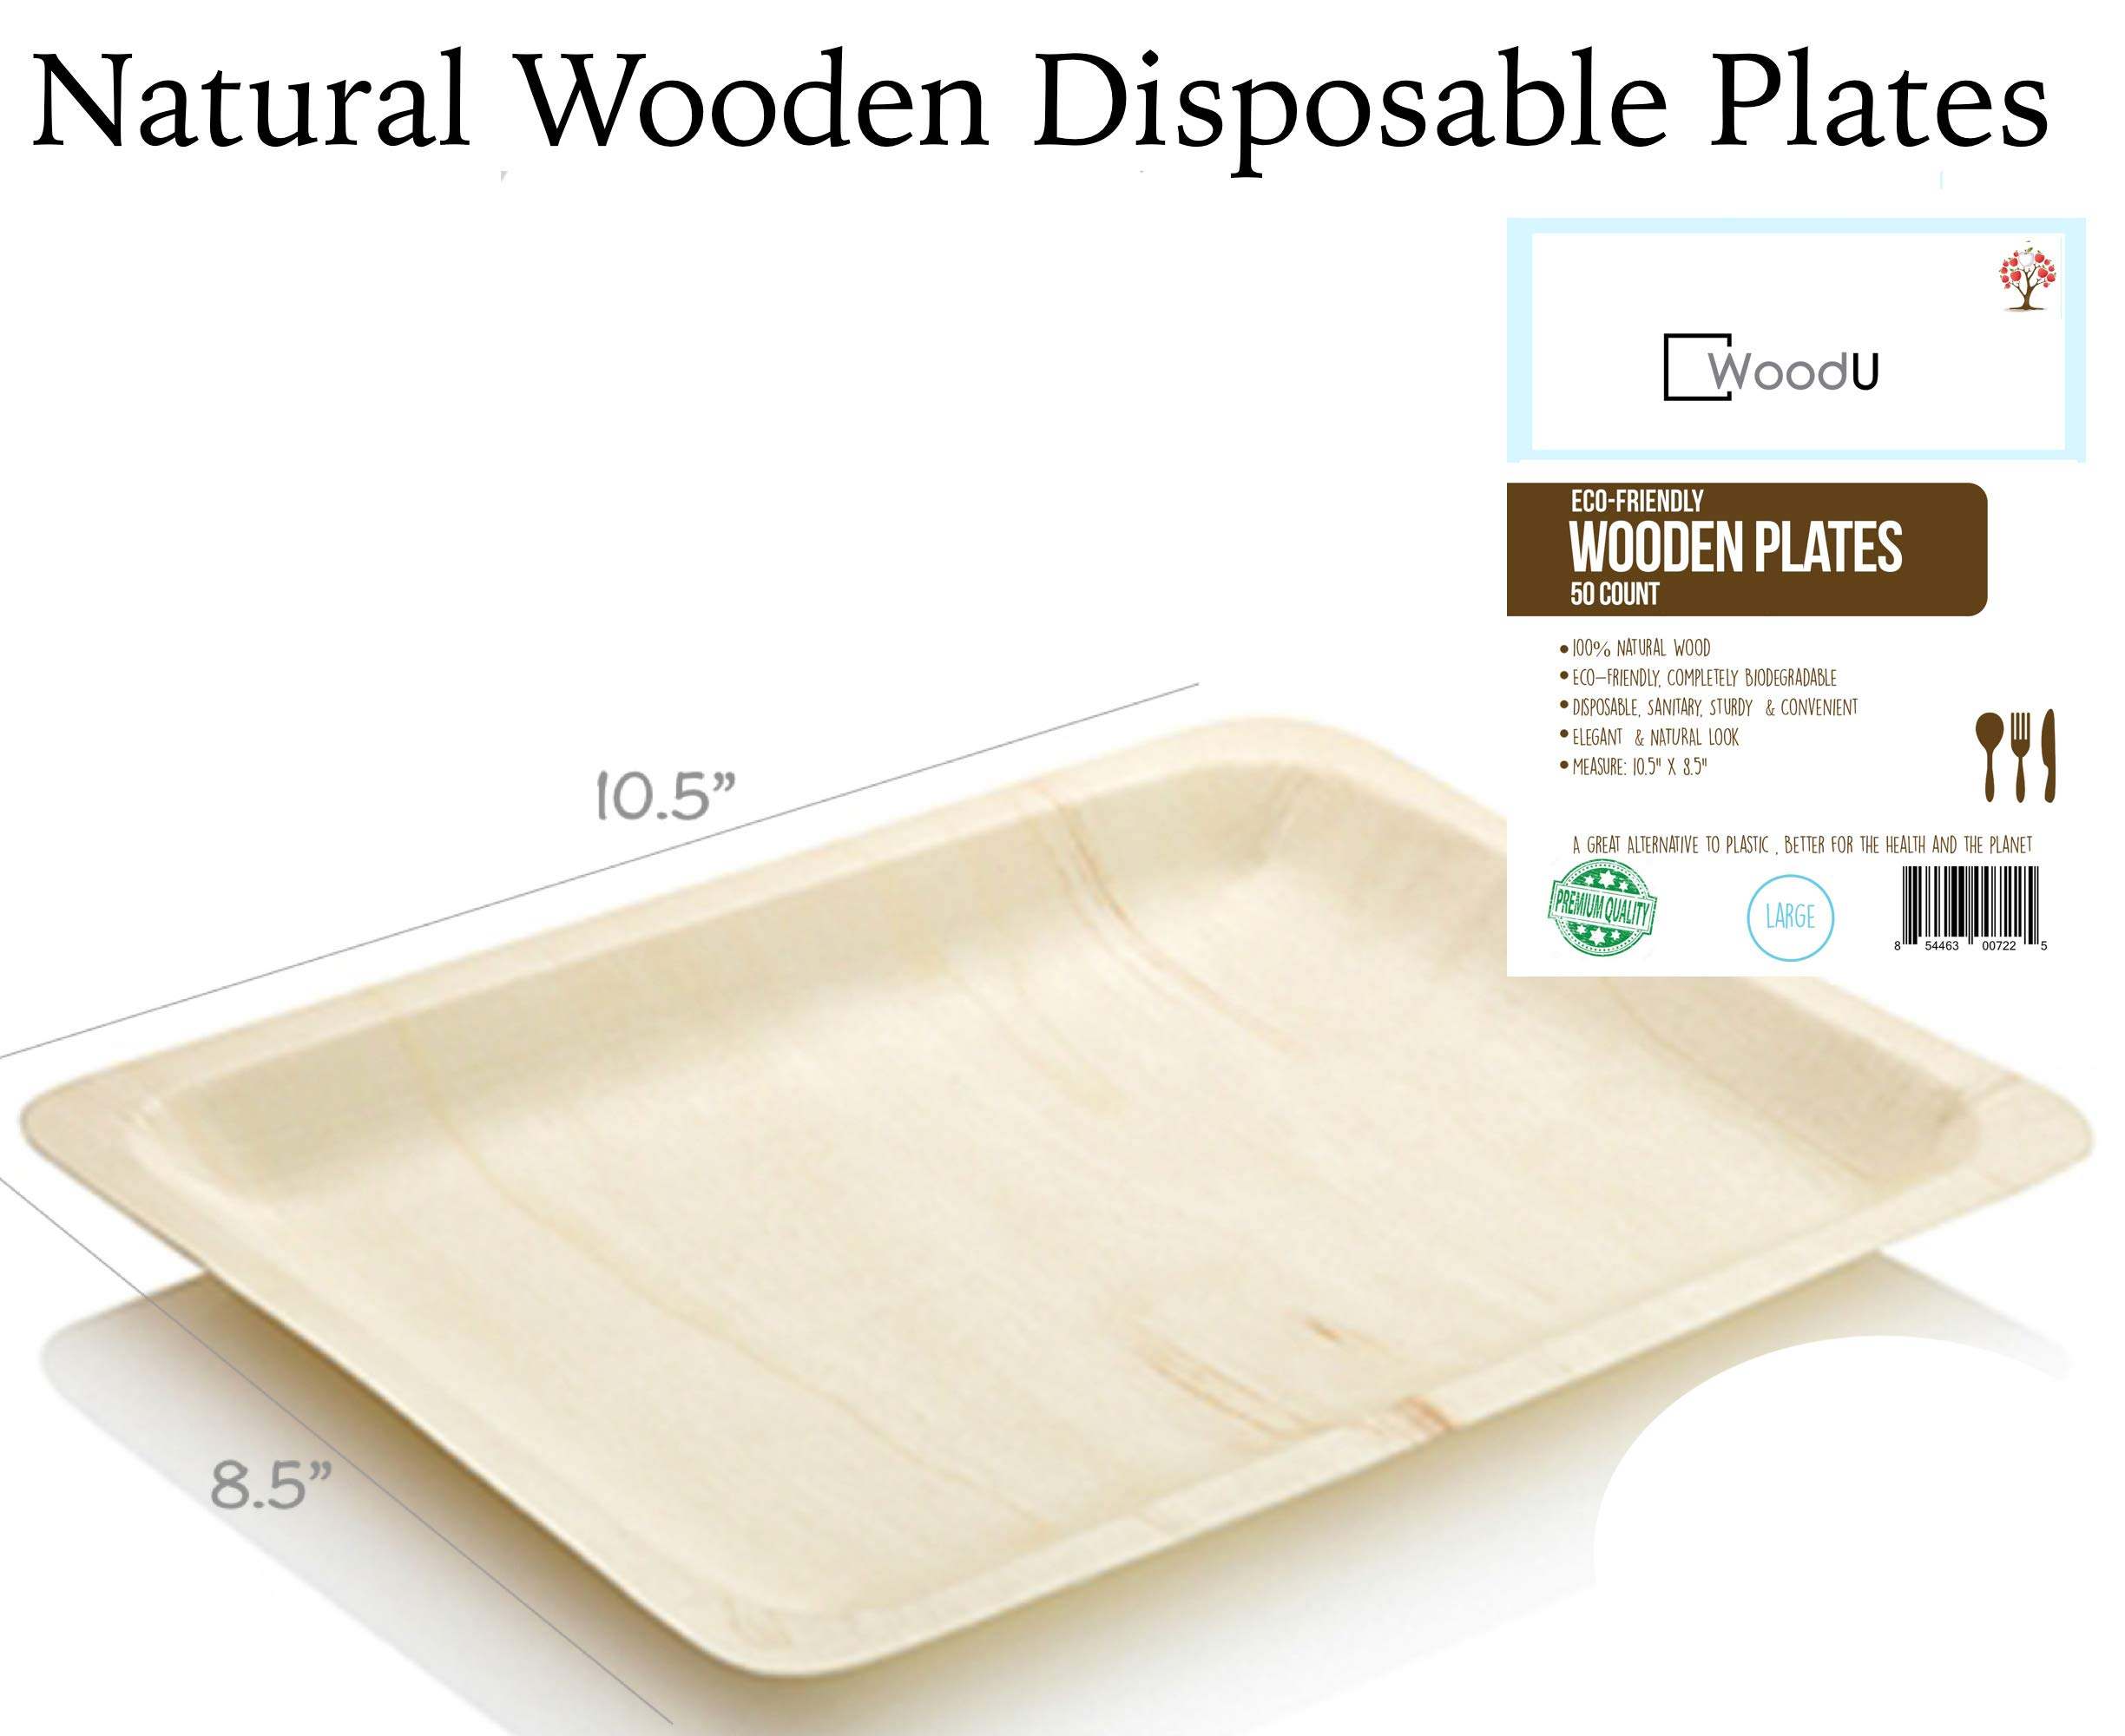 """Disposable Wooden Plates All Natural Eco-Friendly Compostable and Biodegradable Ideal Size for Main Course. Great for Parties, Weddings & Catering, 10.5"""" x 8.5"""" 50pc Party Plates, GO GREEN!"""